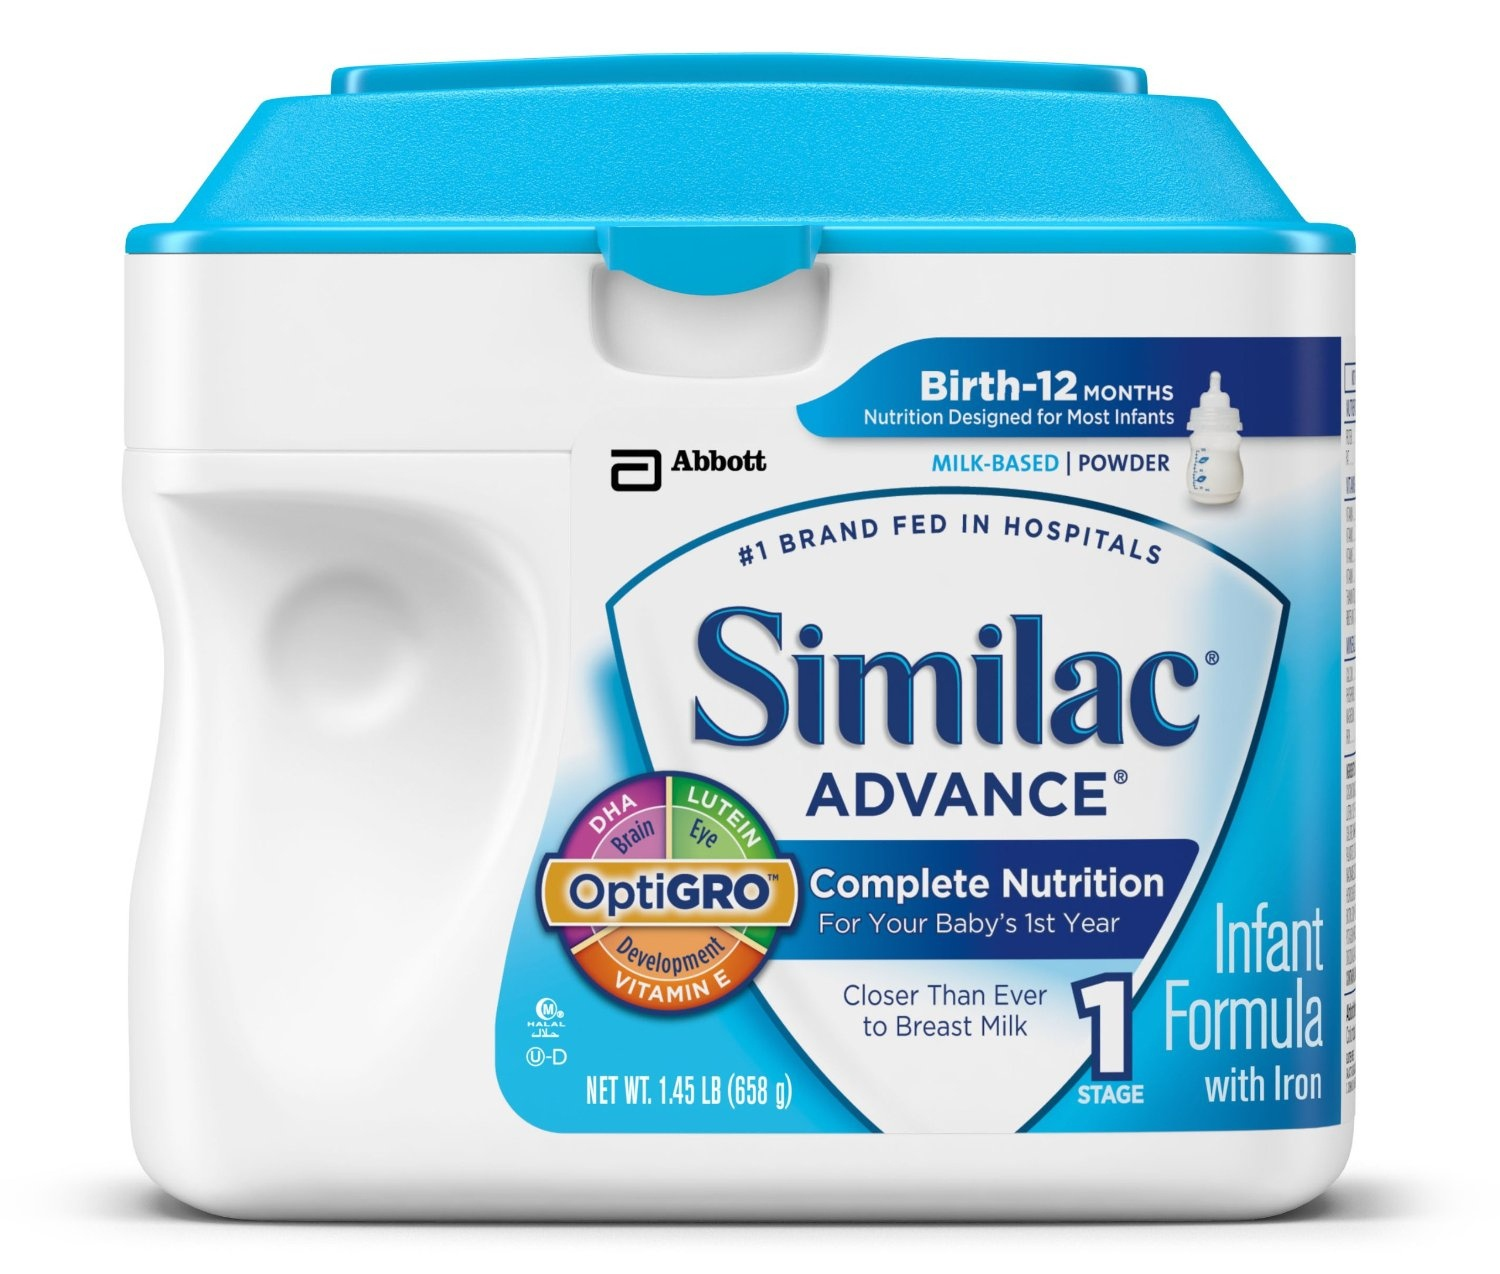 How To Get Coupons For Similac Baby Formula / Wcco Dining Out Deals - Free Printable Similac Baby Formula Coupons